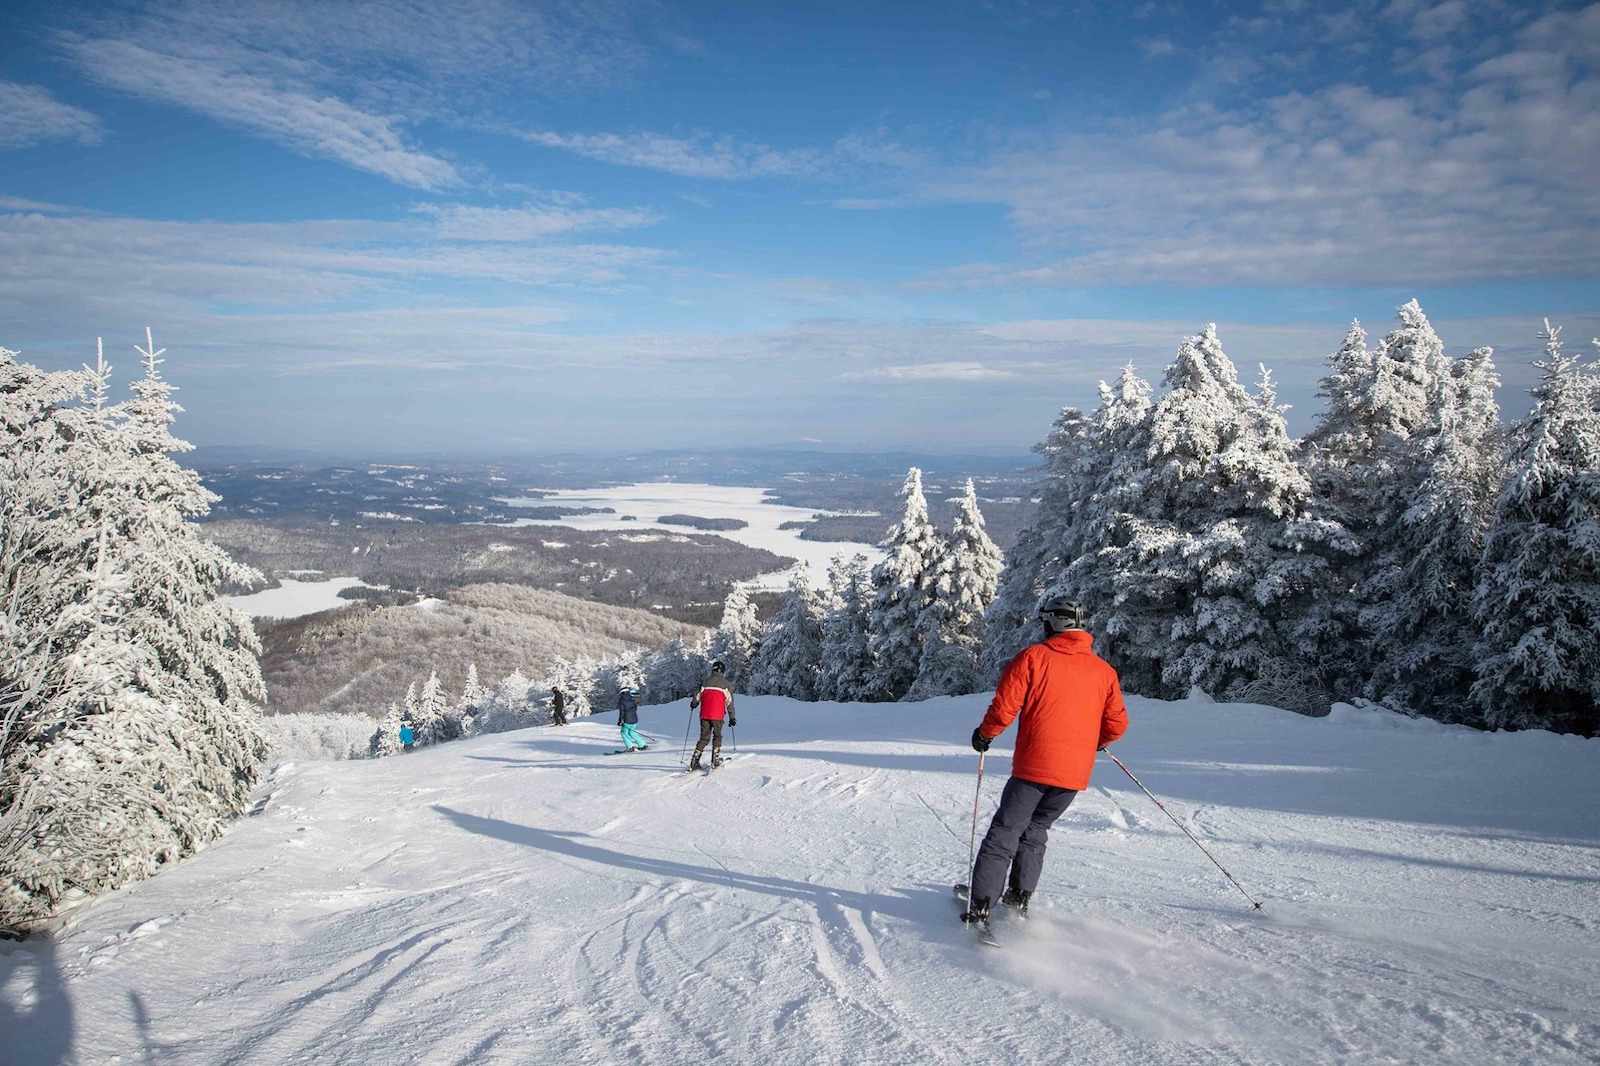 Image of multiple skiers going down the slopes at Mount Sunapee Resort in New Hampshire